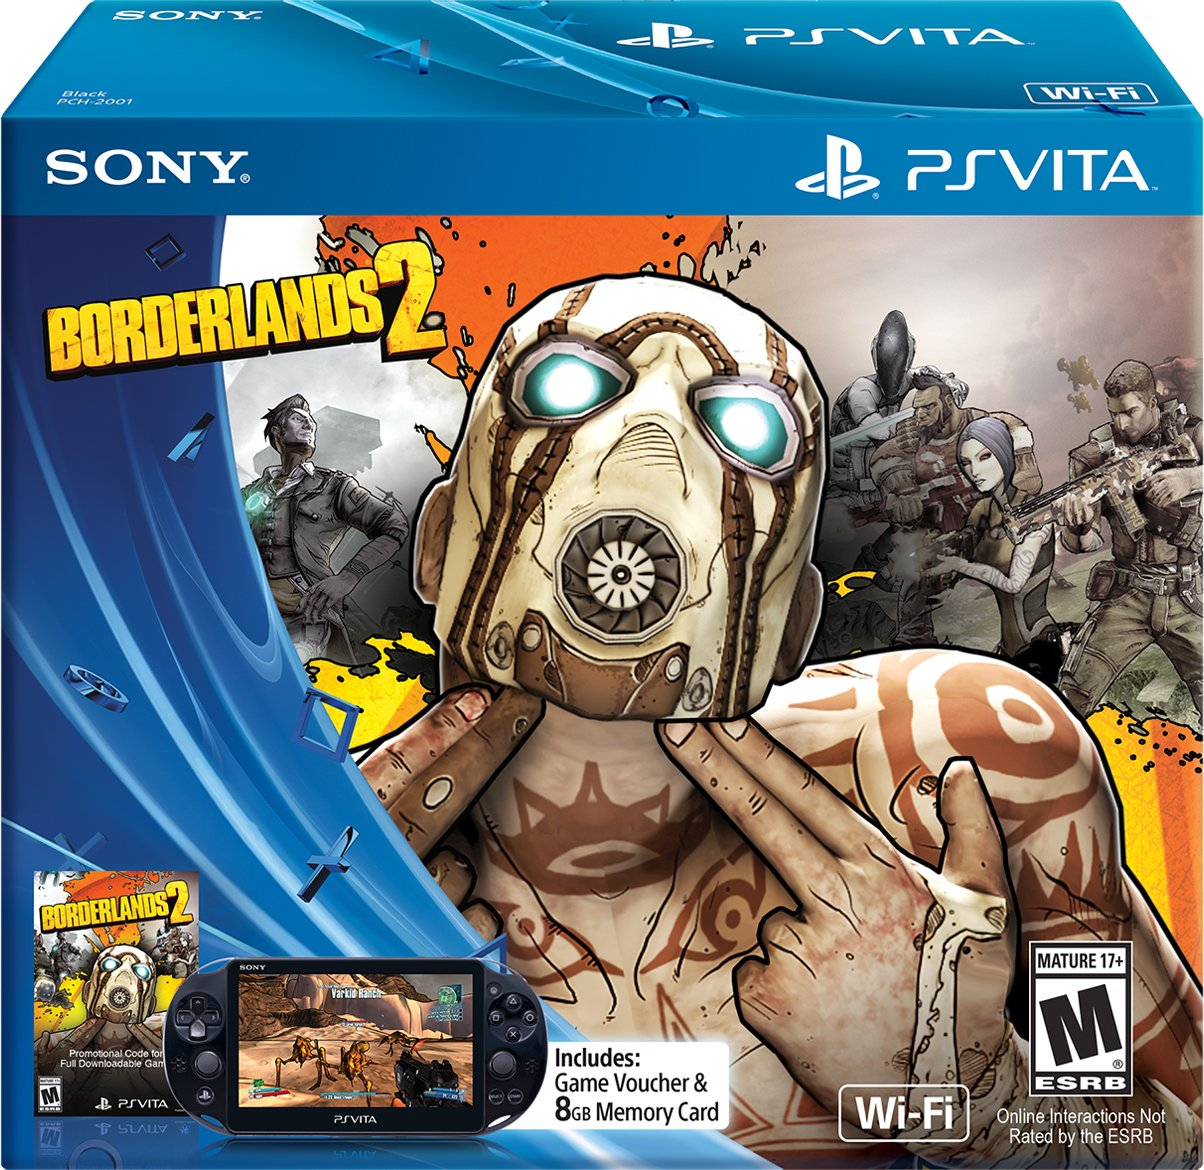 Borderlands 2 - Limited Edition - PlayStation Vita Bundle by Sony